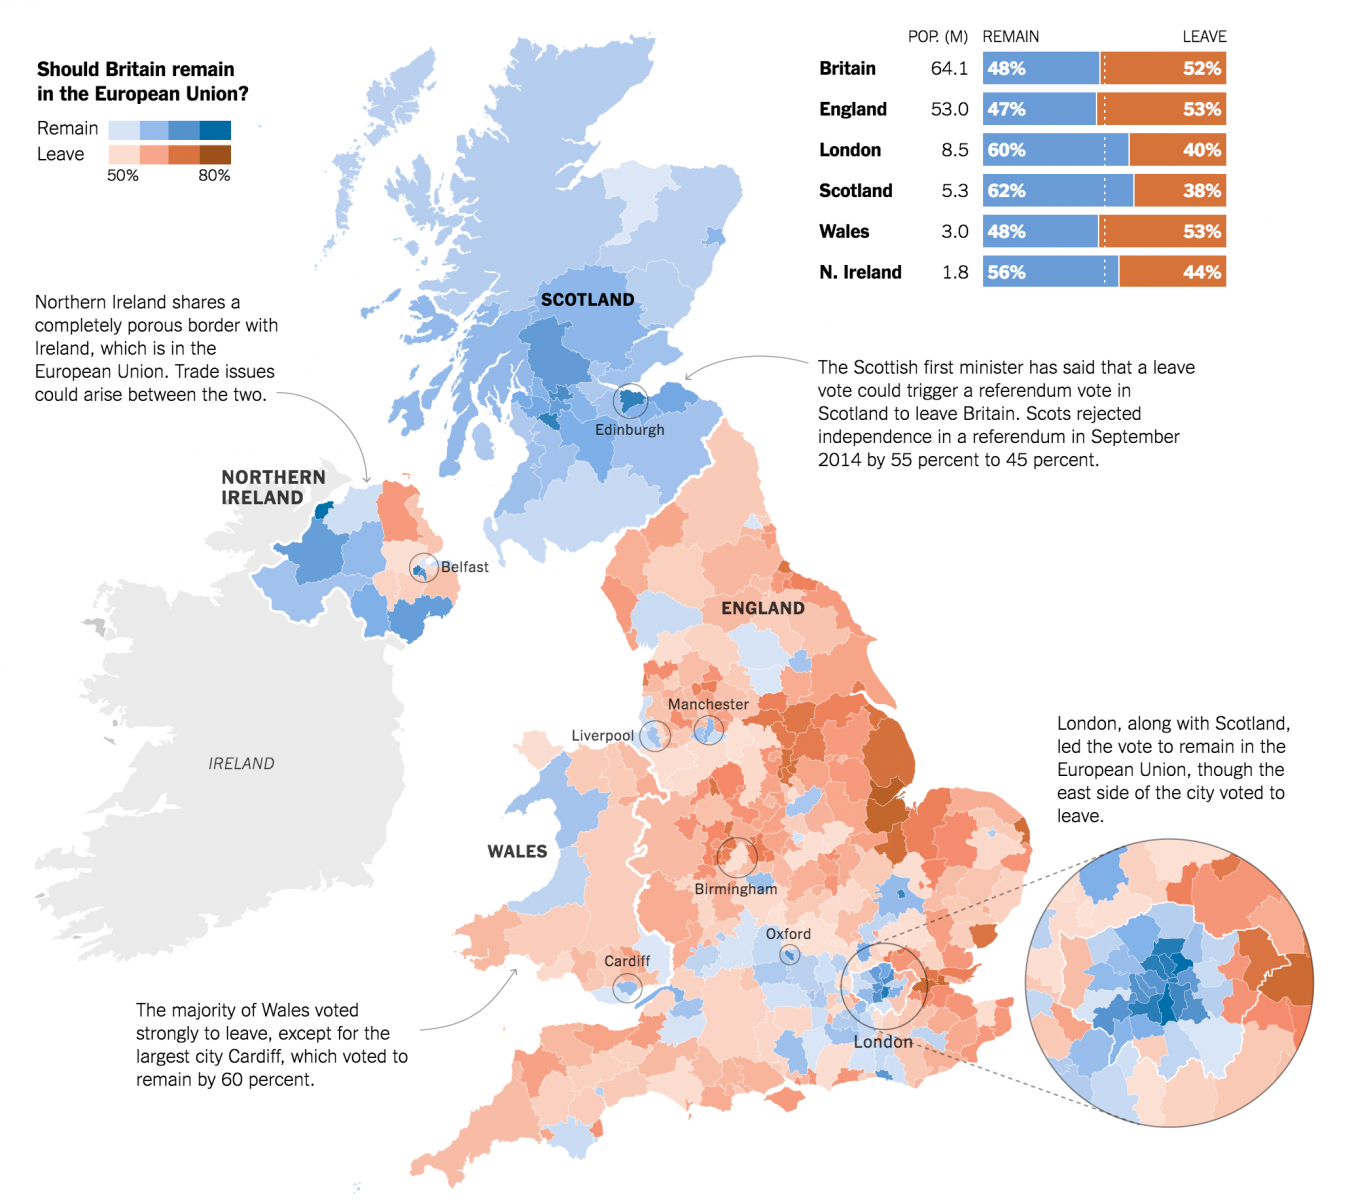 Source: New York Times, How Britain Voted in the E.U. Referendum